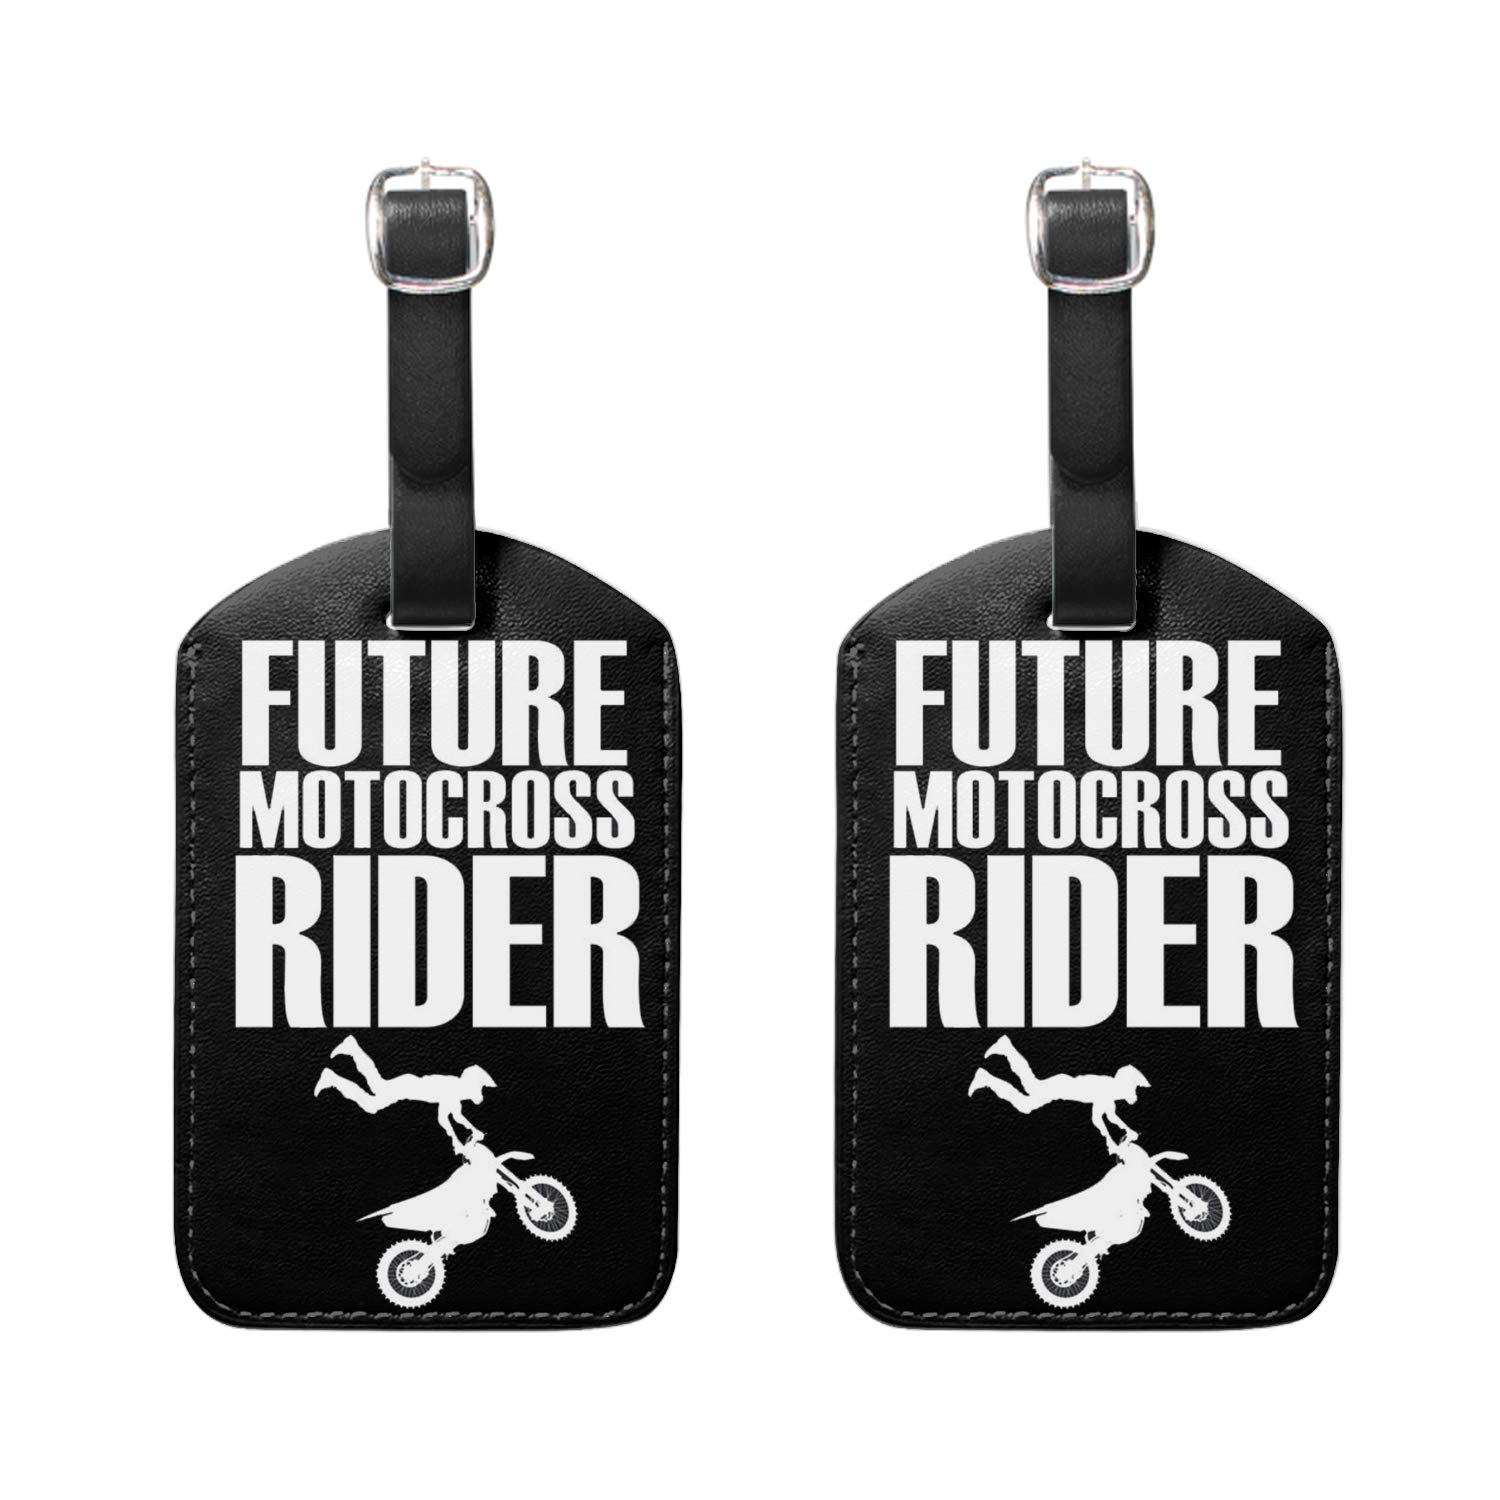 Luggage Tags 2 Pieces Set,Got Motocross Racing PU Leather Travel Bag Tags for Cruise Ships,for Men and Women